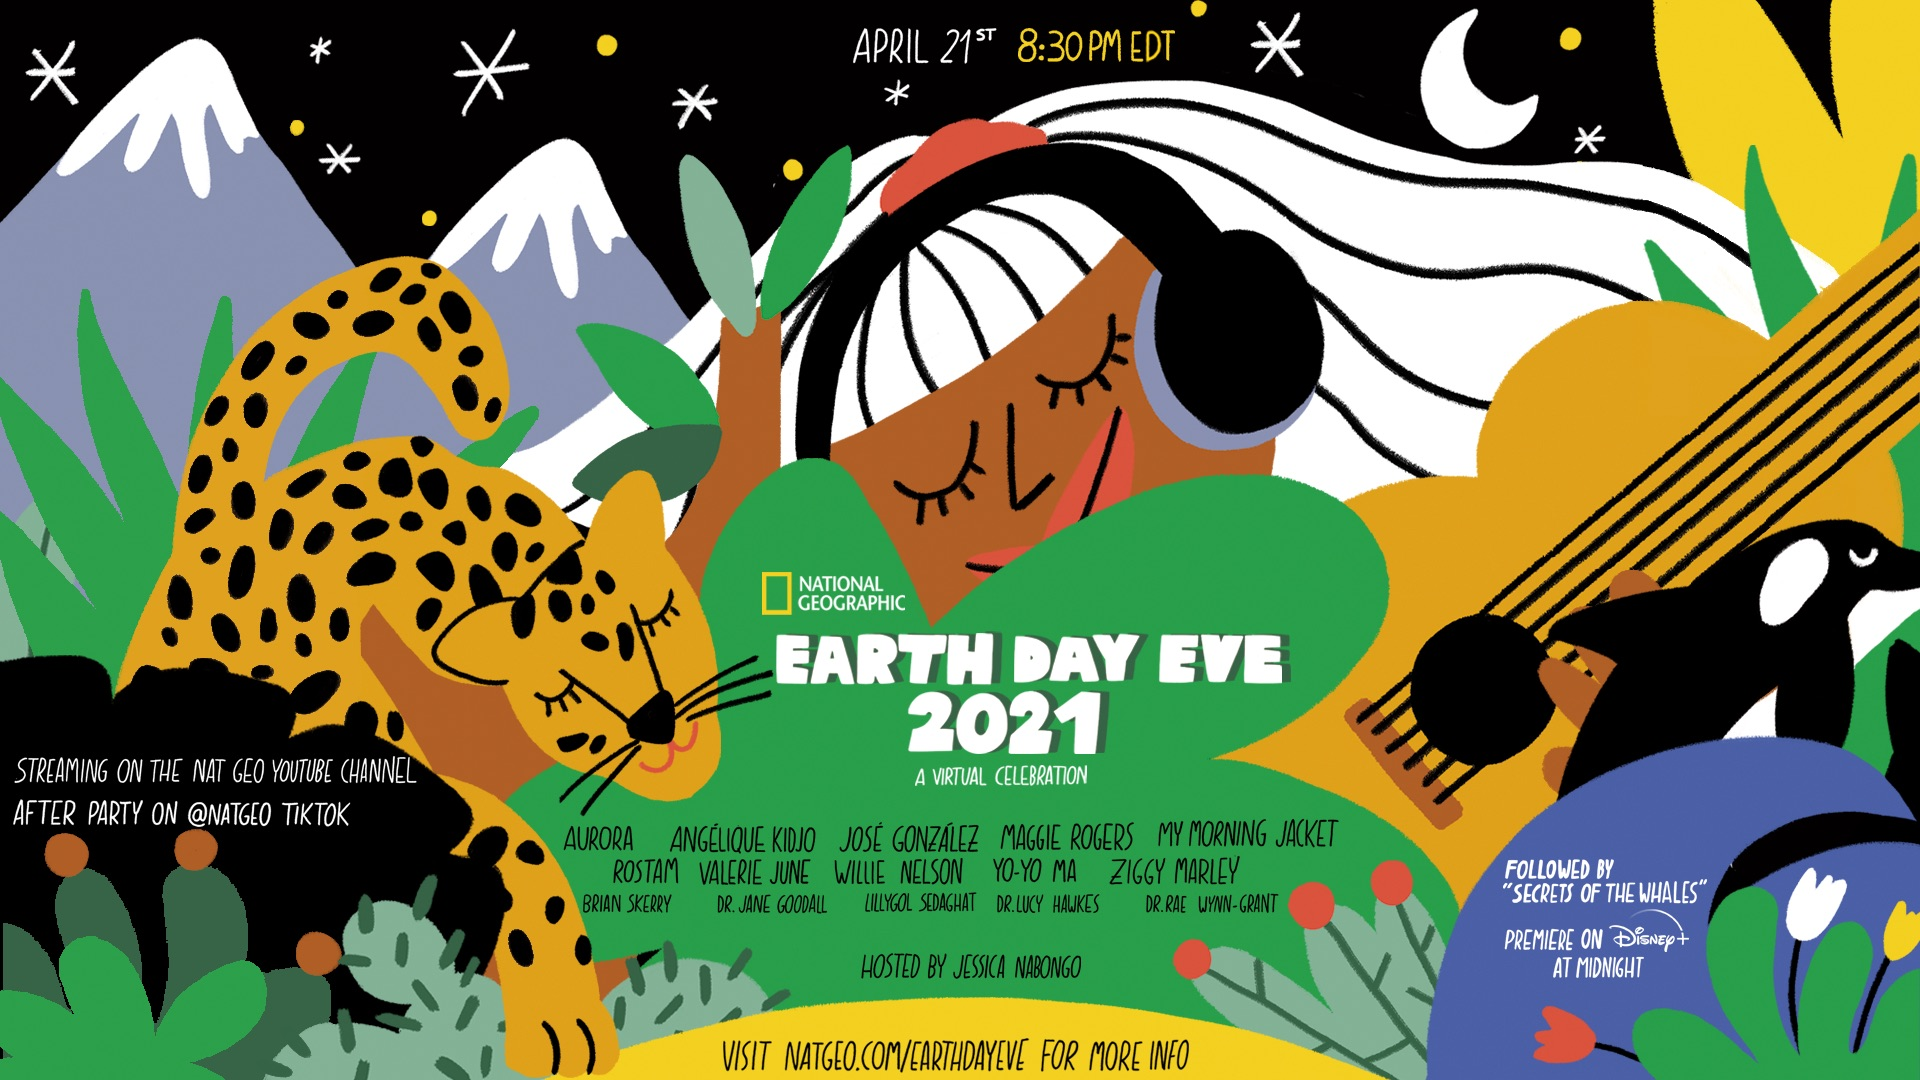 Nat Geo's Earth Day Eve 2021